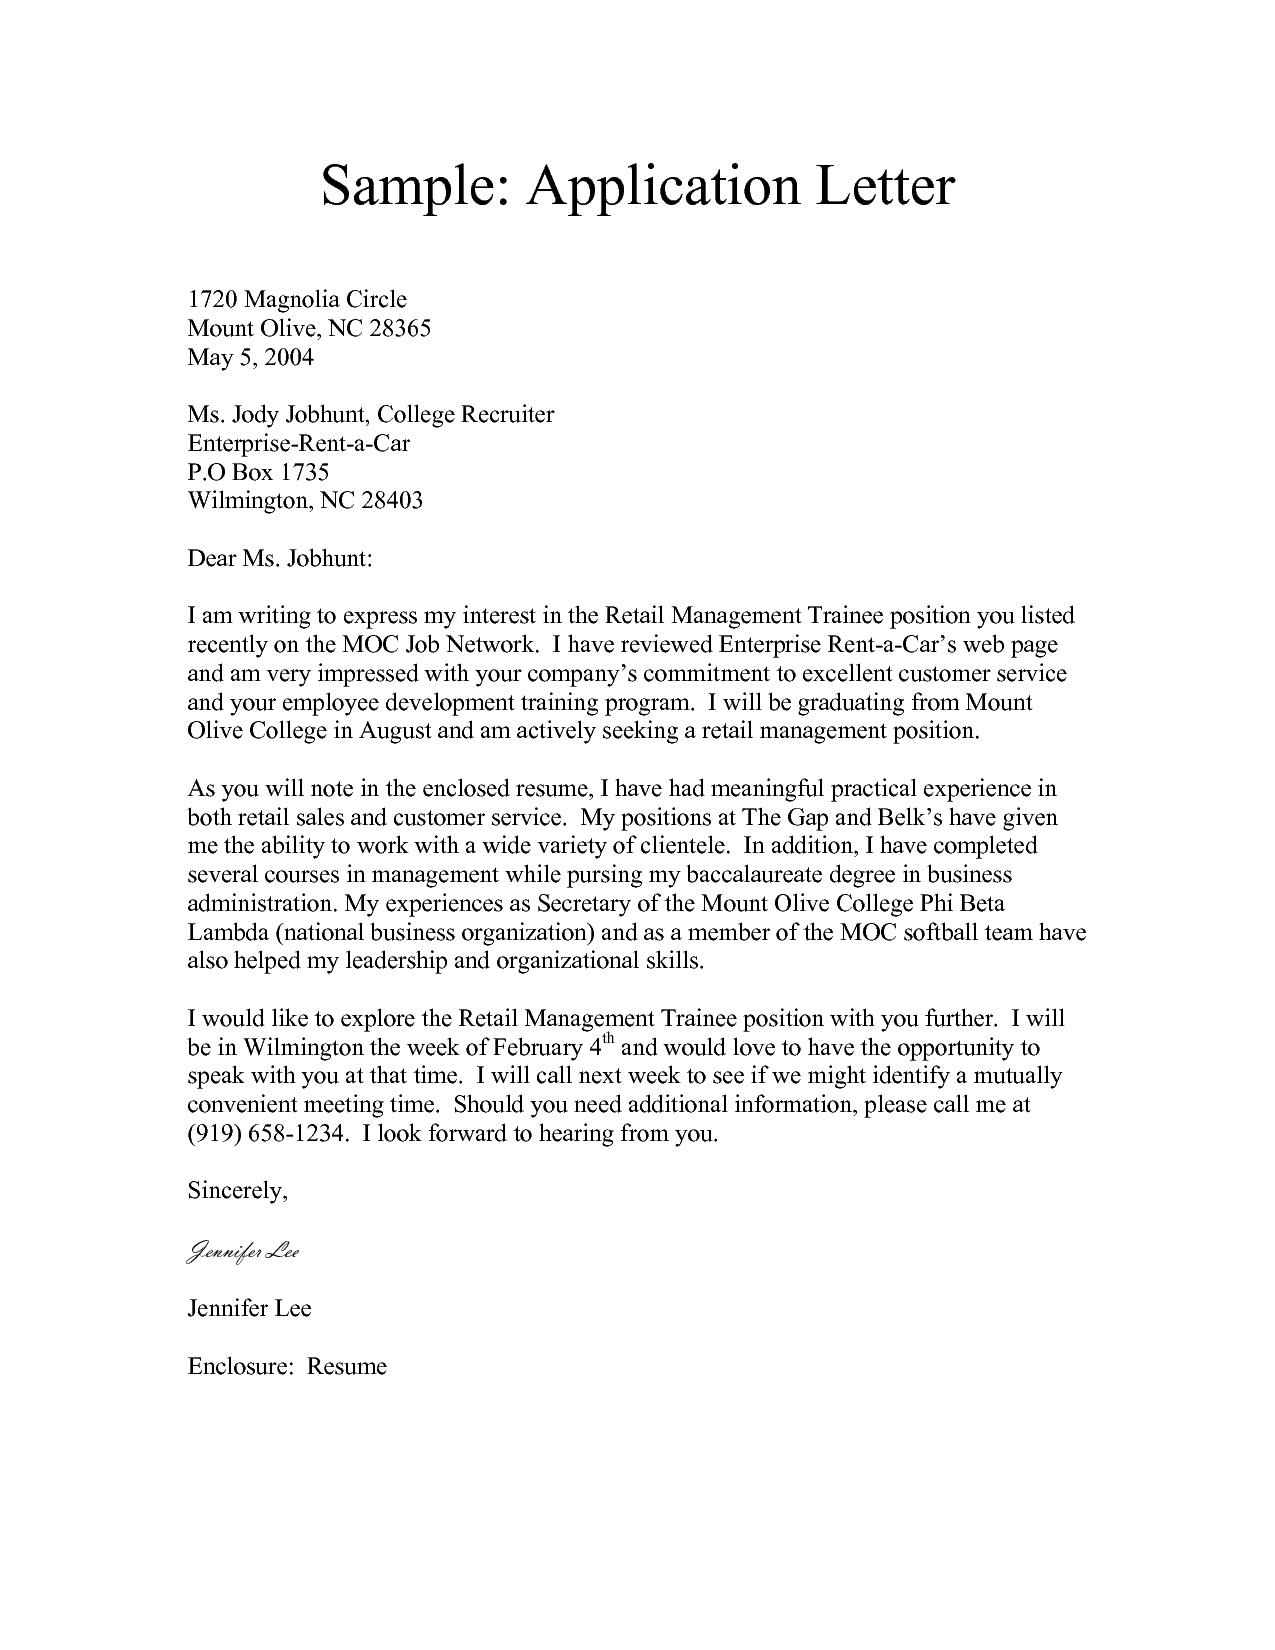 Awesome Sample Letters Word  Application Letter Sample